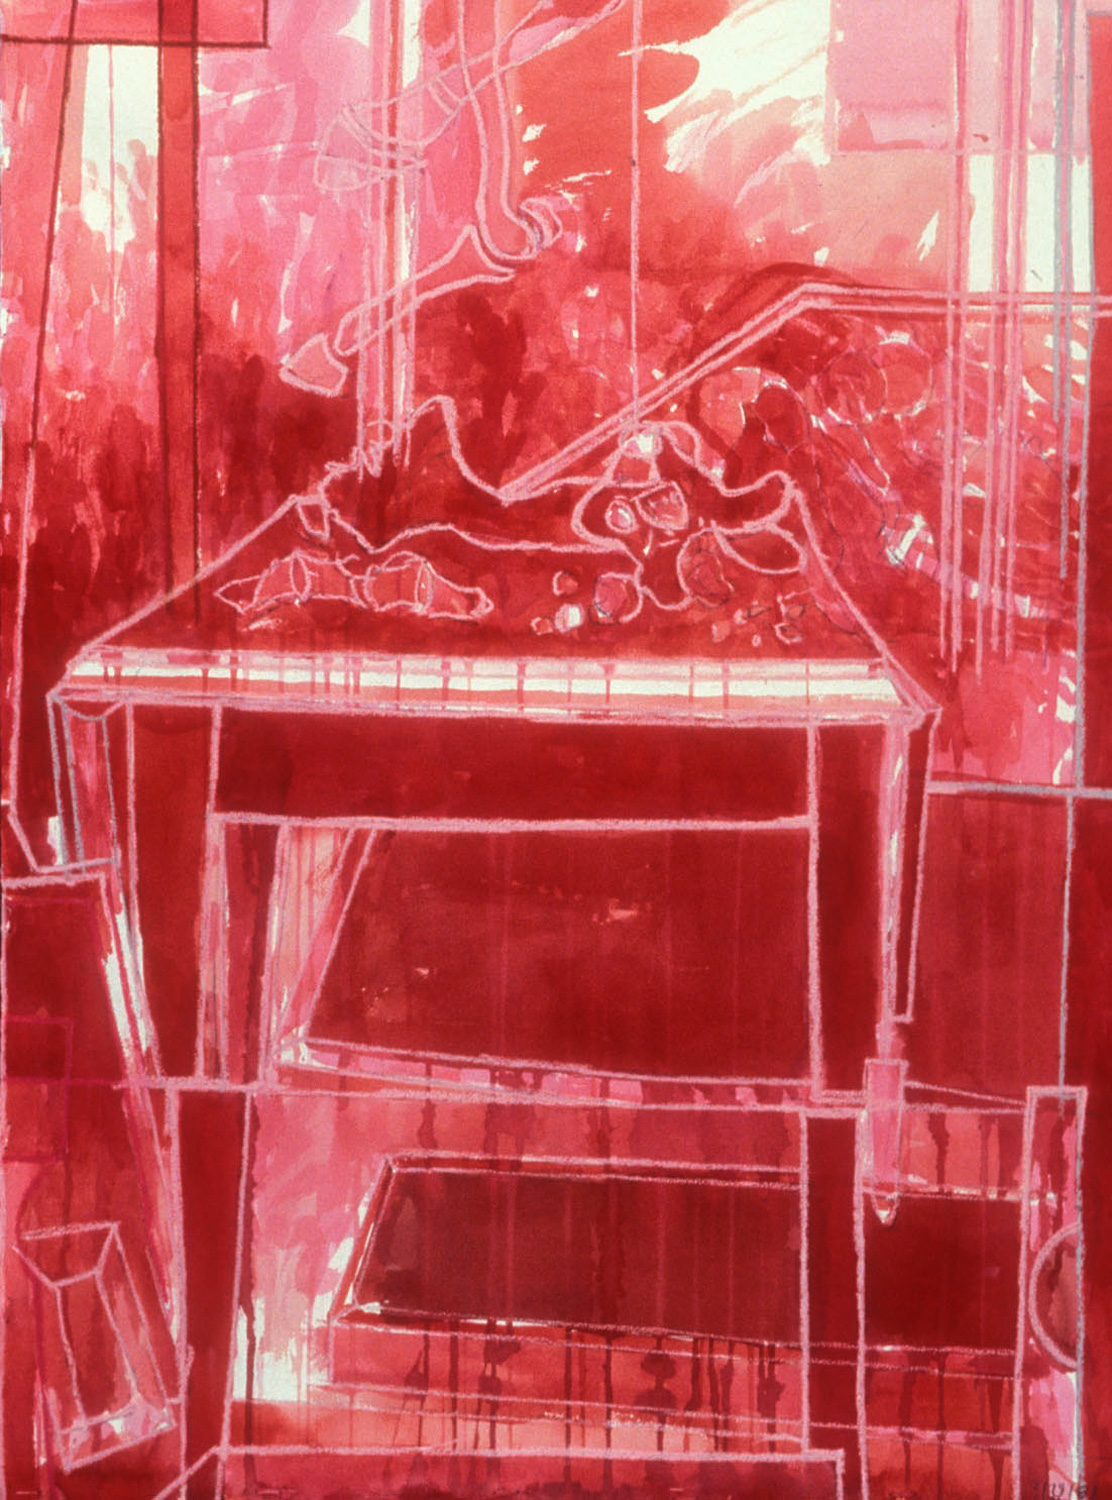 Red Table,   1989, charcoal and gouache on paper, 30 x 22 in.